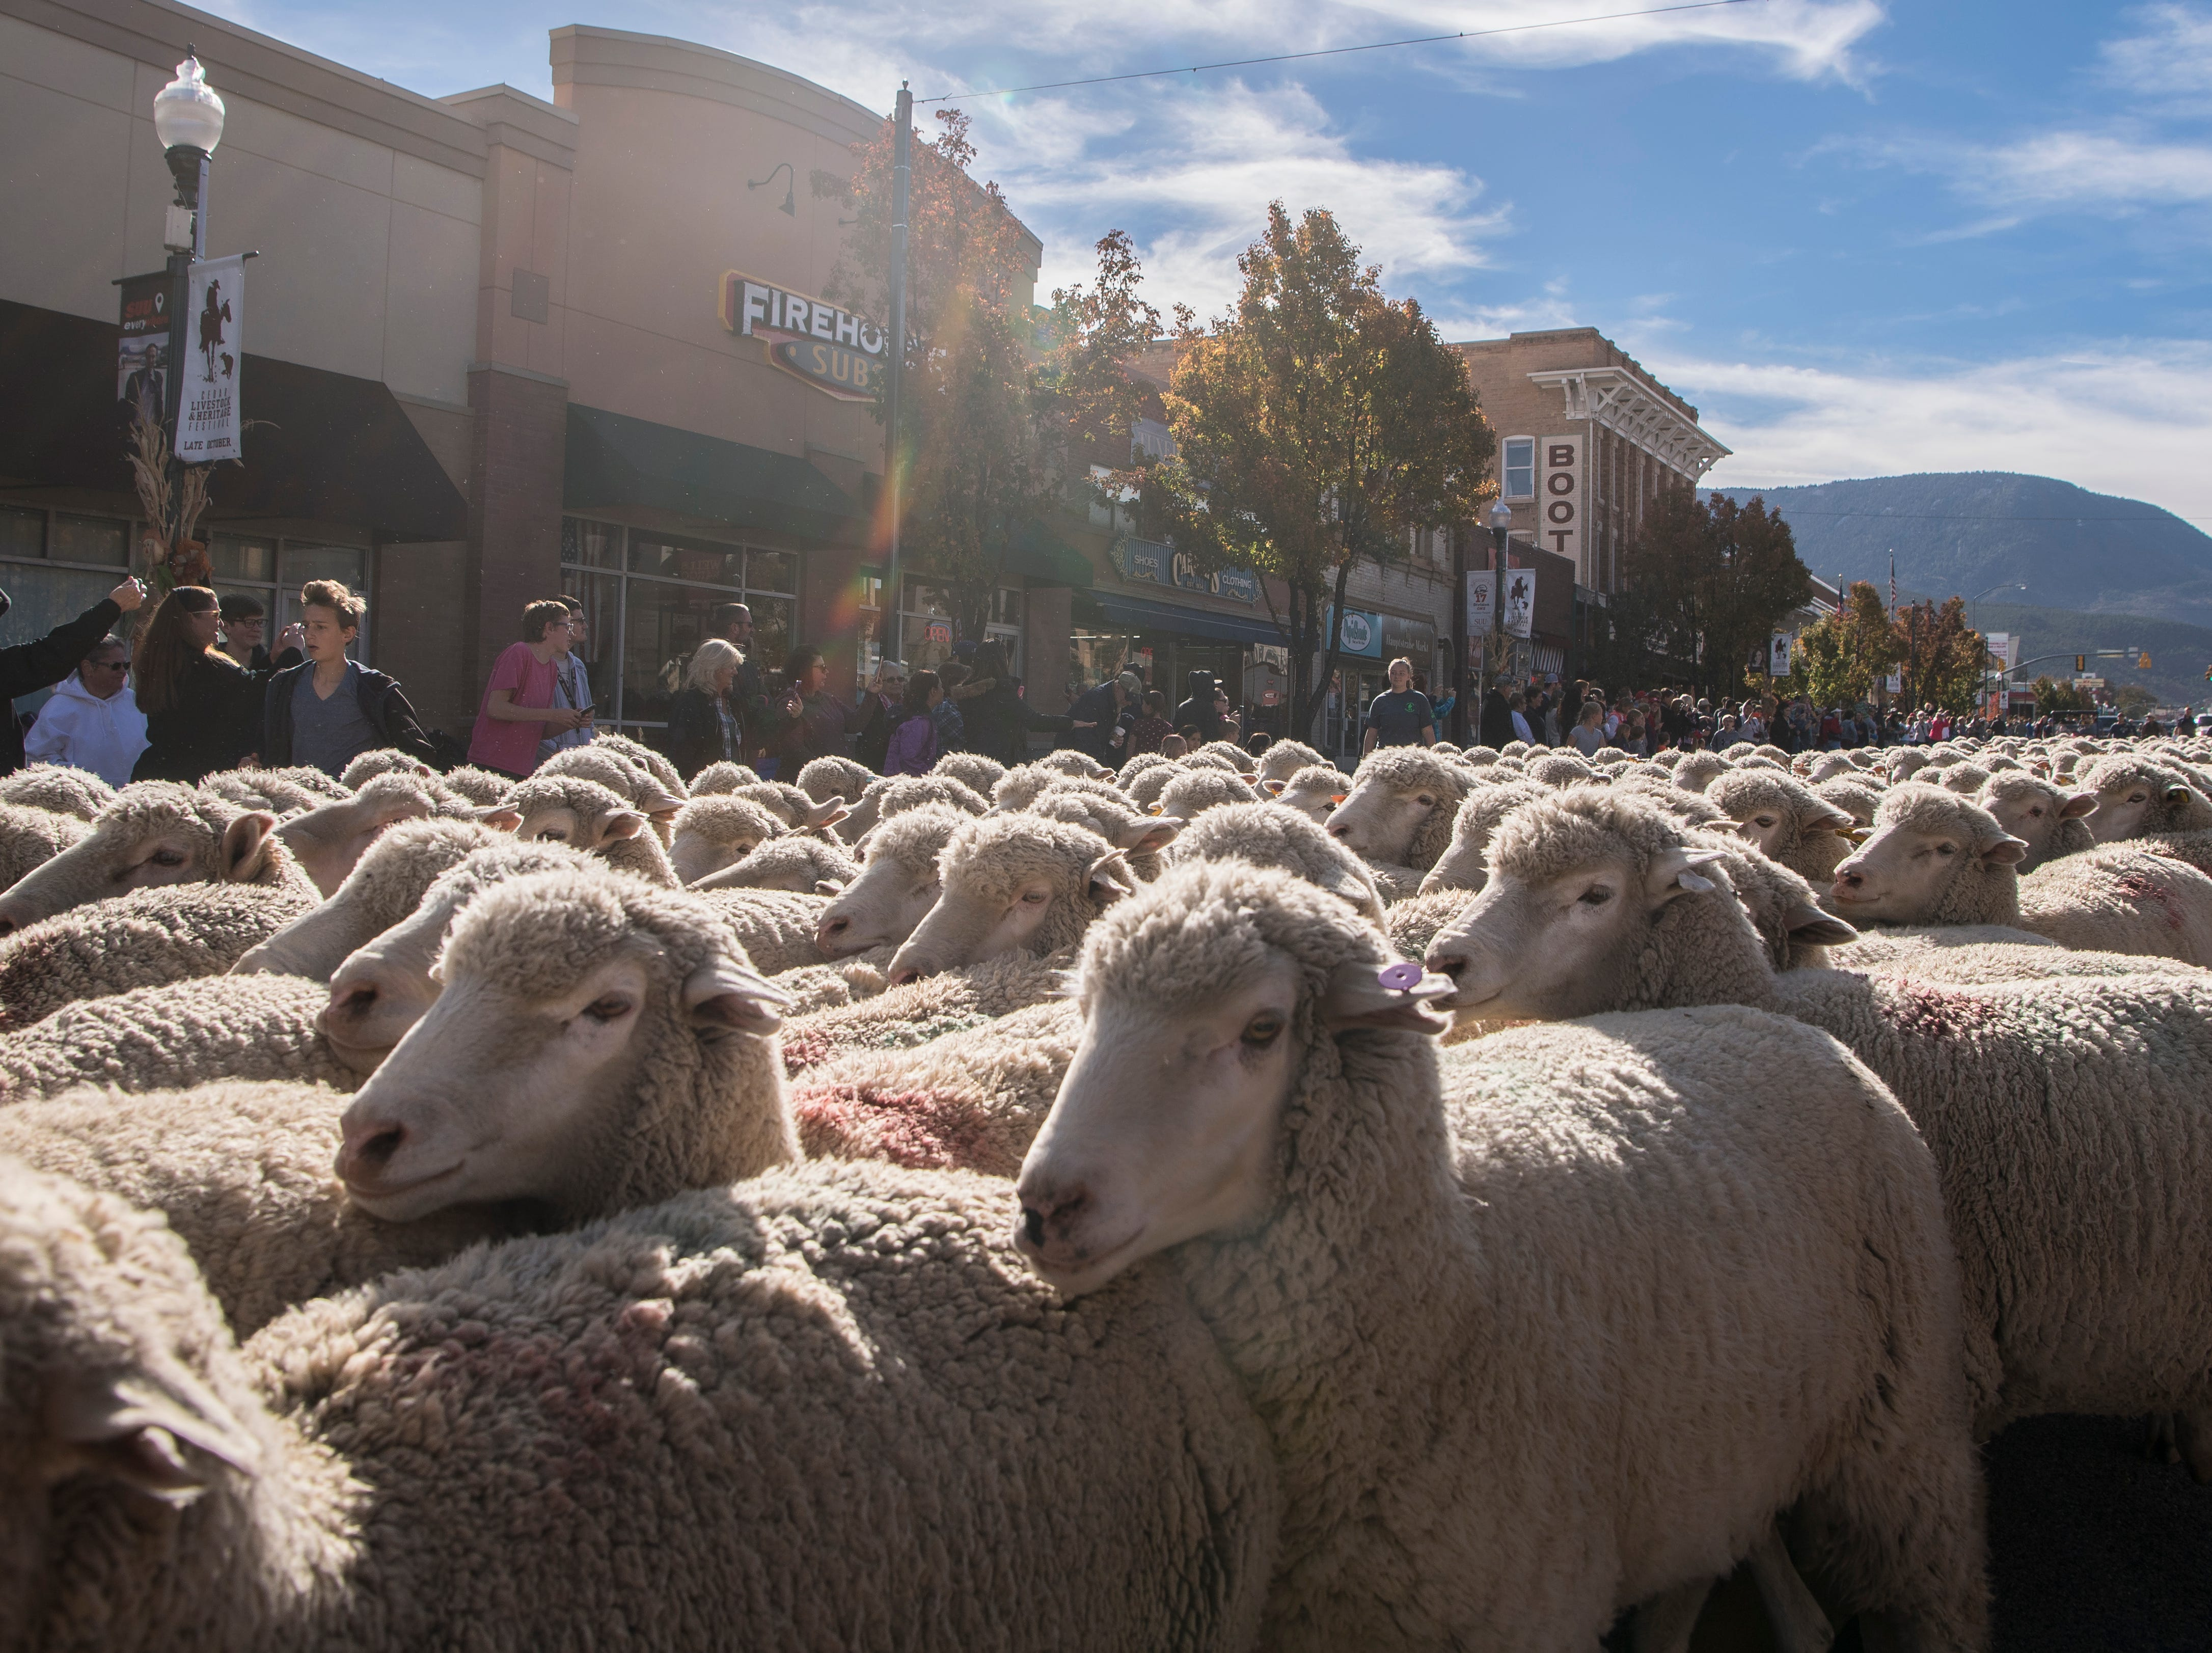 Sheep march down Main Street in Cedar City as a part of the Livestock & Heritage Festival Saturday, October 27, 2018.